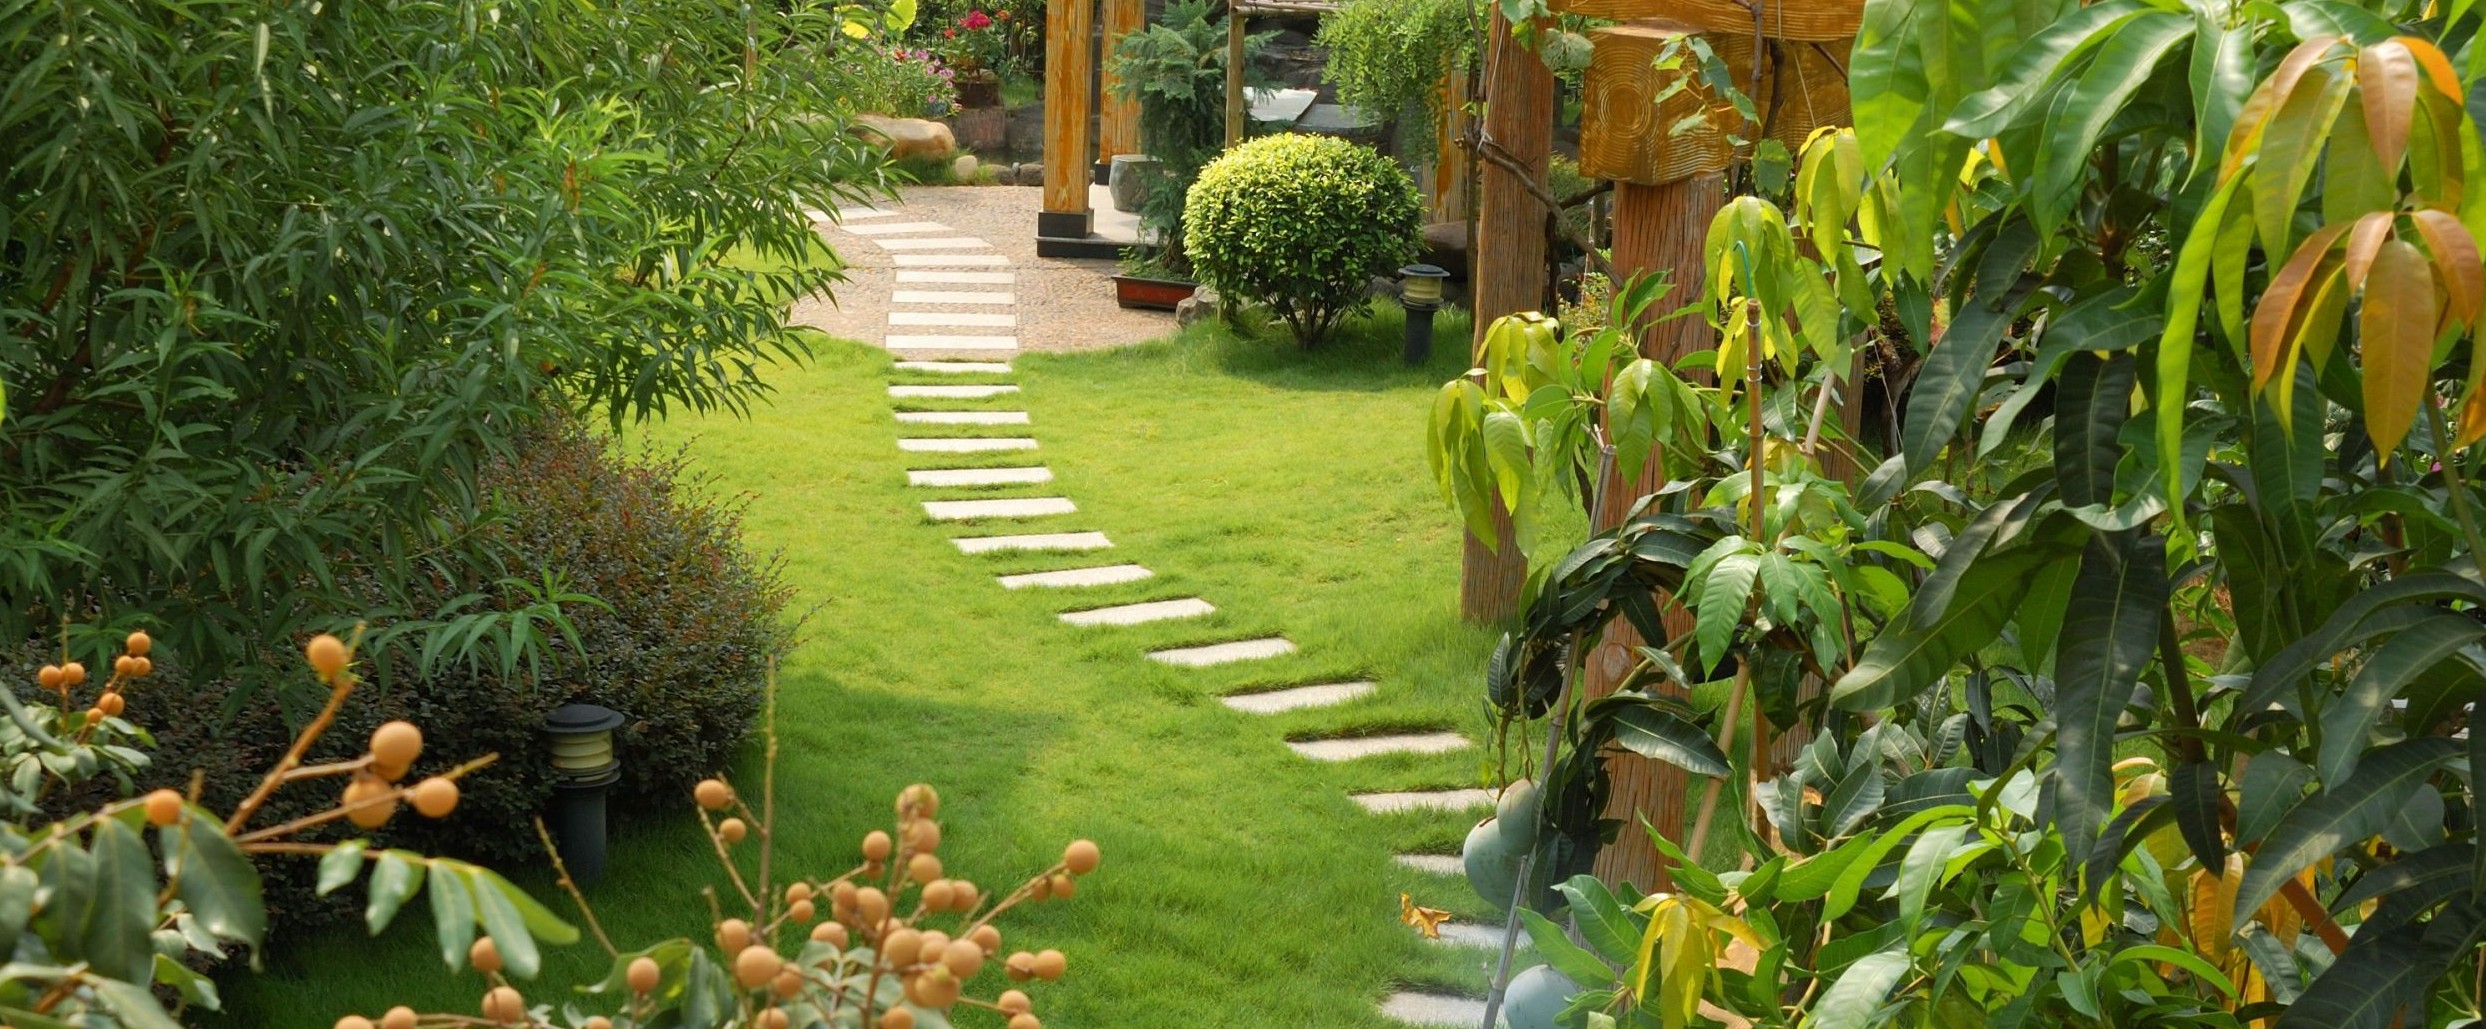 Garden Design and Tips